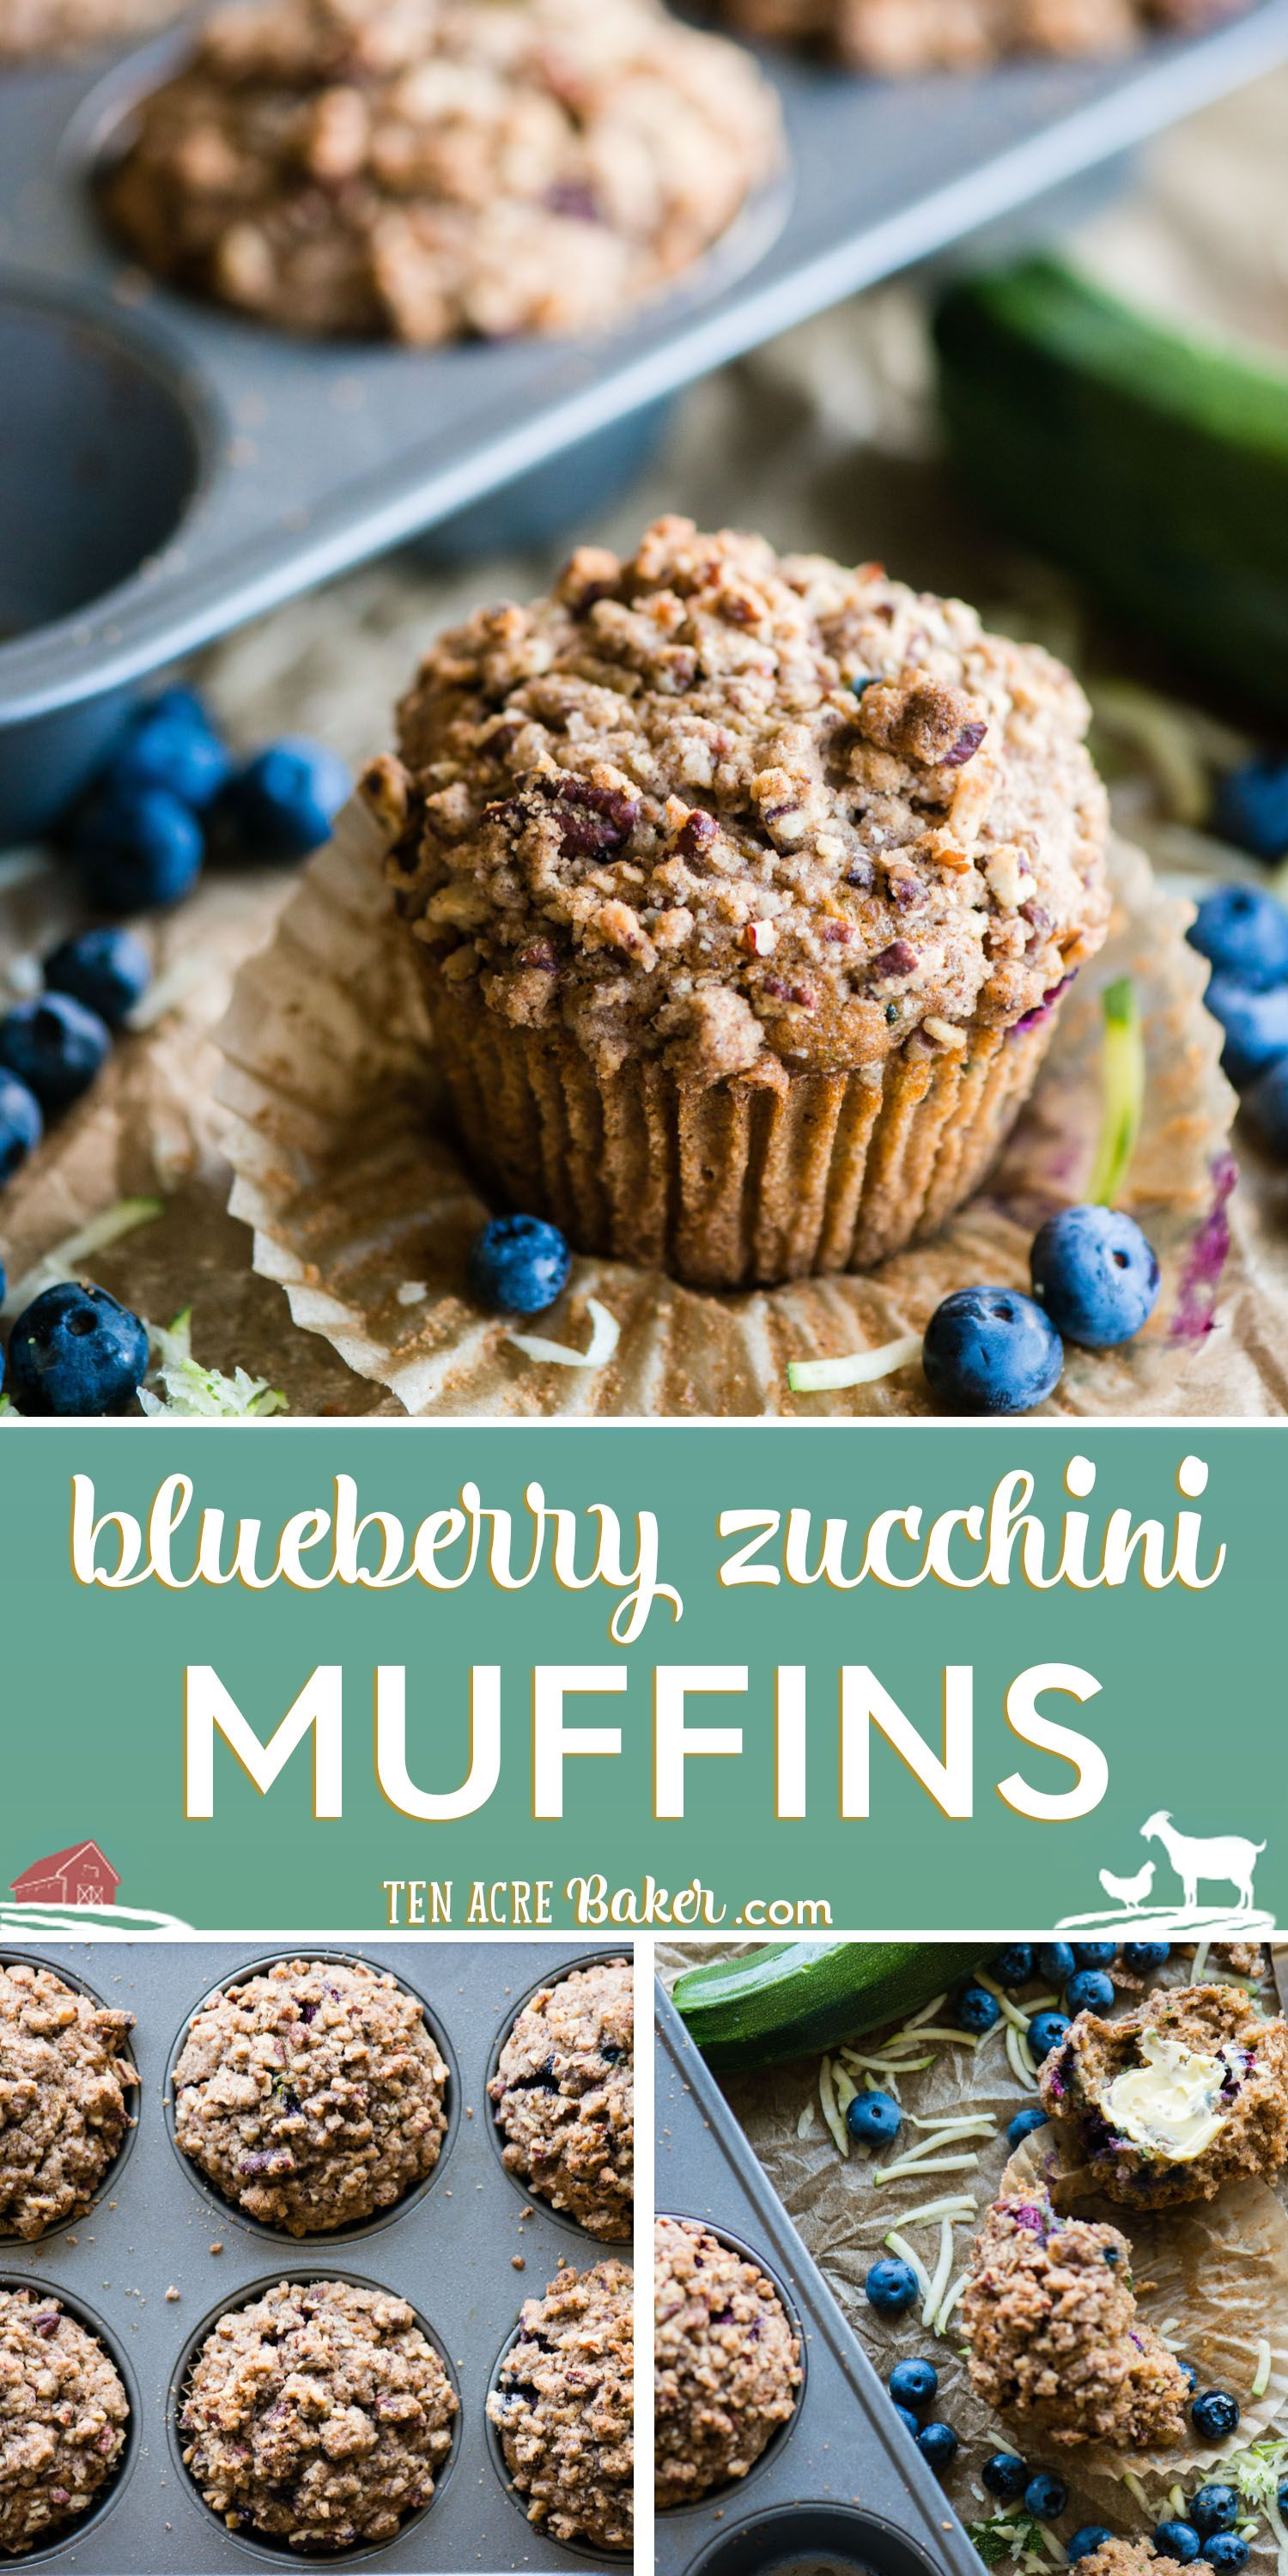 Zucchini Blueberry Muffins With Stresel Topping Ten Acre Baker Recipe In 2020 Blue Berry Muffins Blueberry Zucchini Muffins Baking Recipes